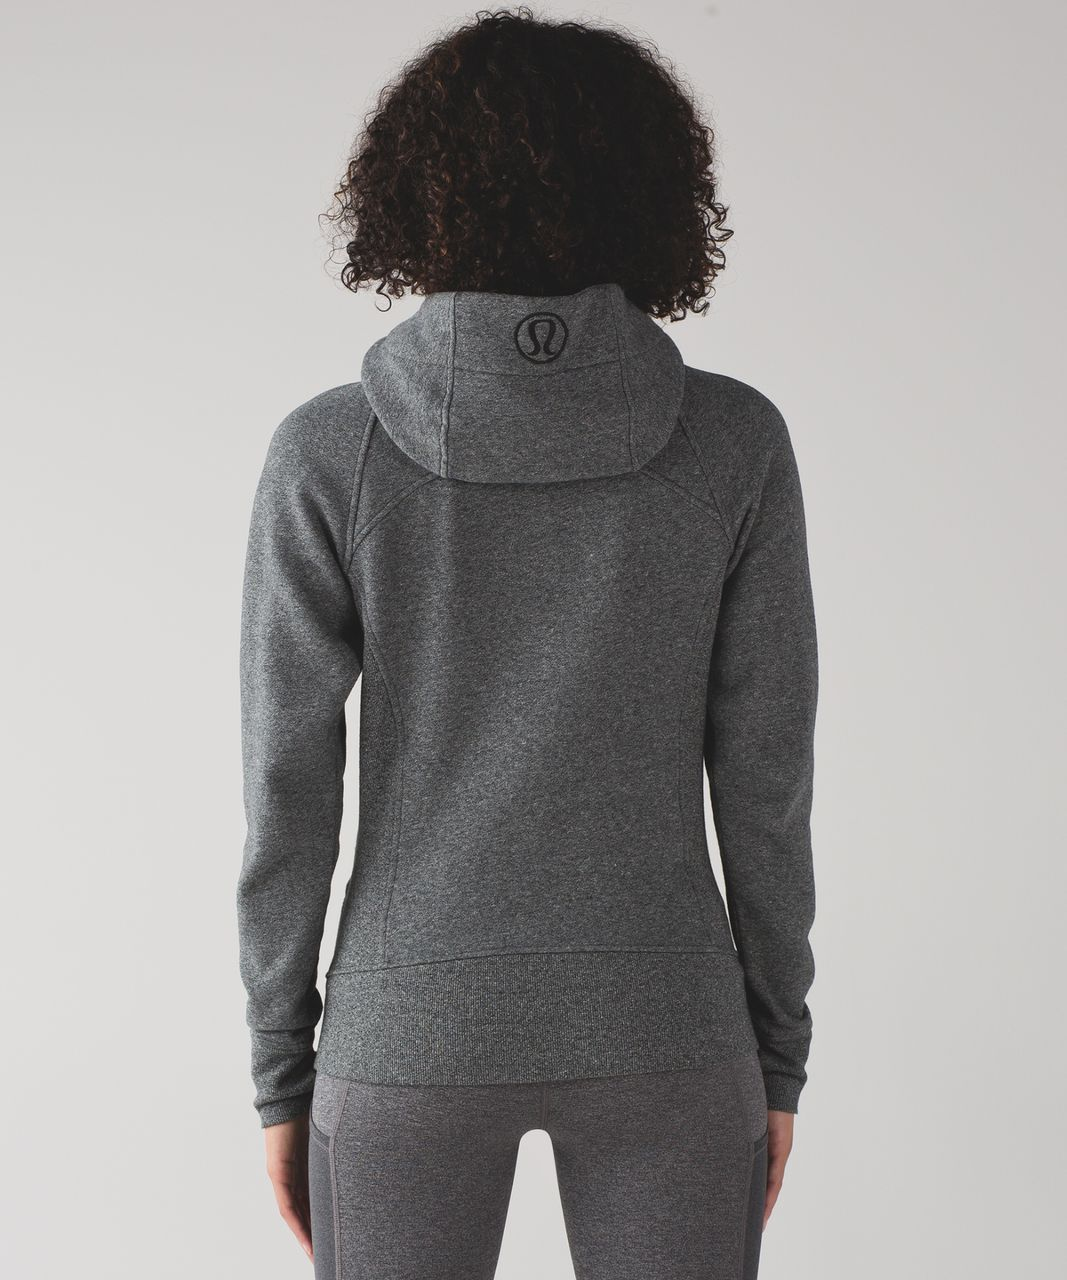 Lululemon Scuba Hoodie *Light Cotton Fleece - Heathered Speckled Black (First Release)